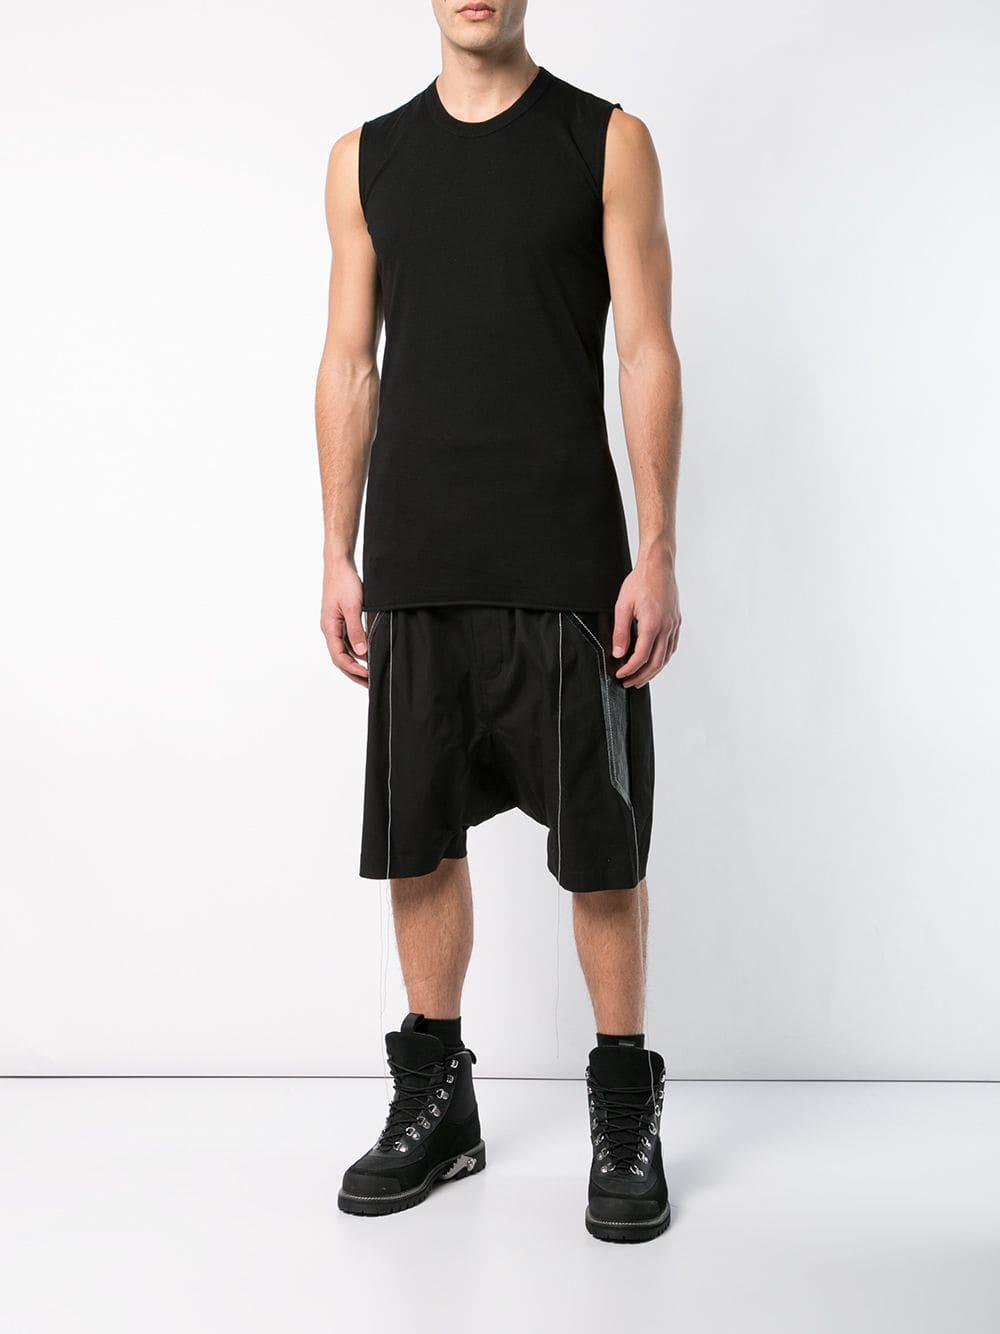 8f642c285b93a Lyst - Rick Owens Fitted Tank Top in Black for Men